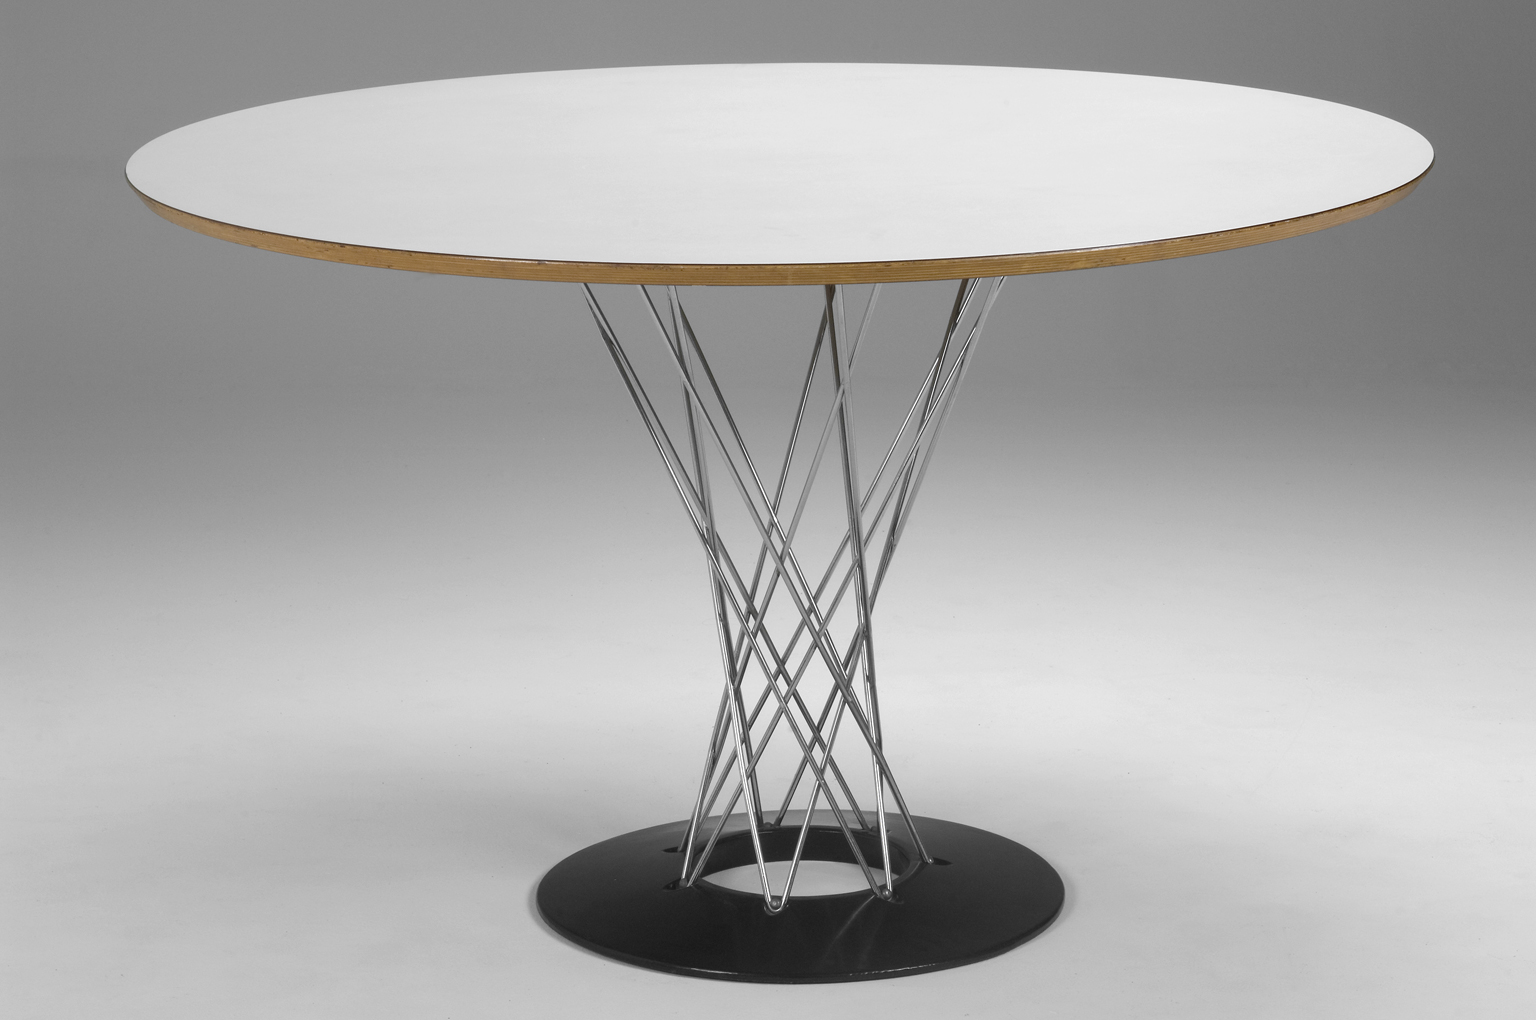 jacksons cyclone dining table isamu noguchi. Black Bedroom Furniture Sets. Home Design Ideas